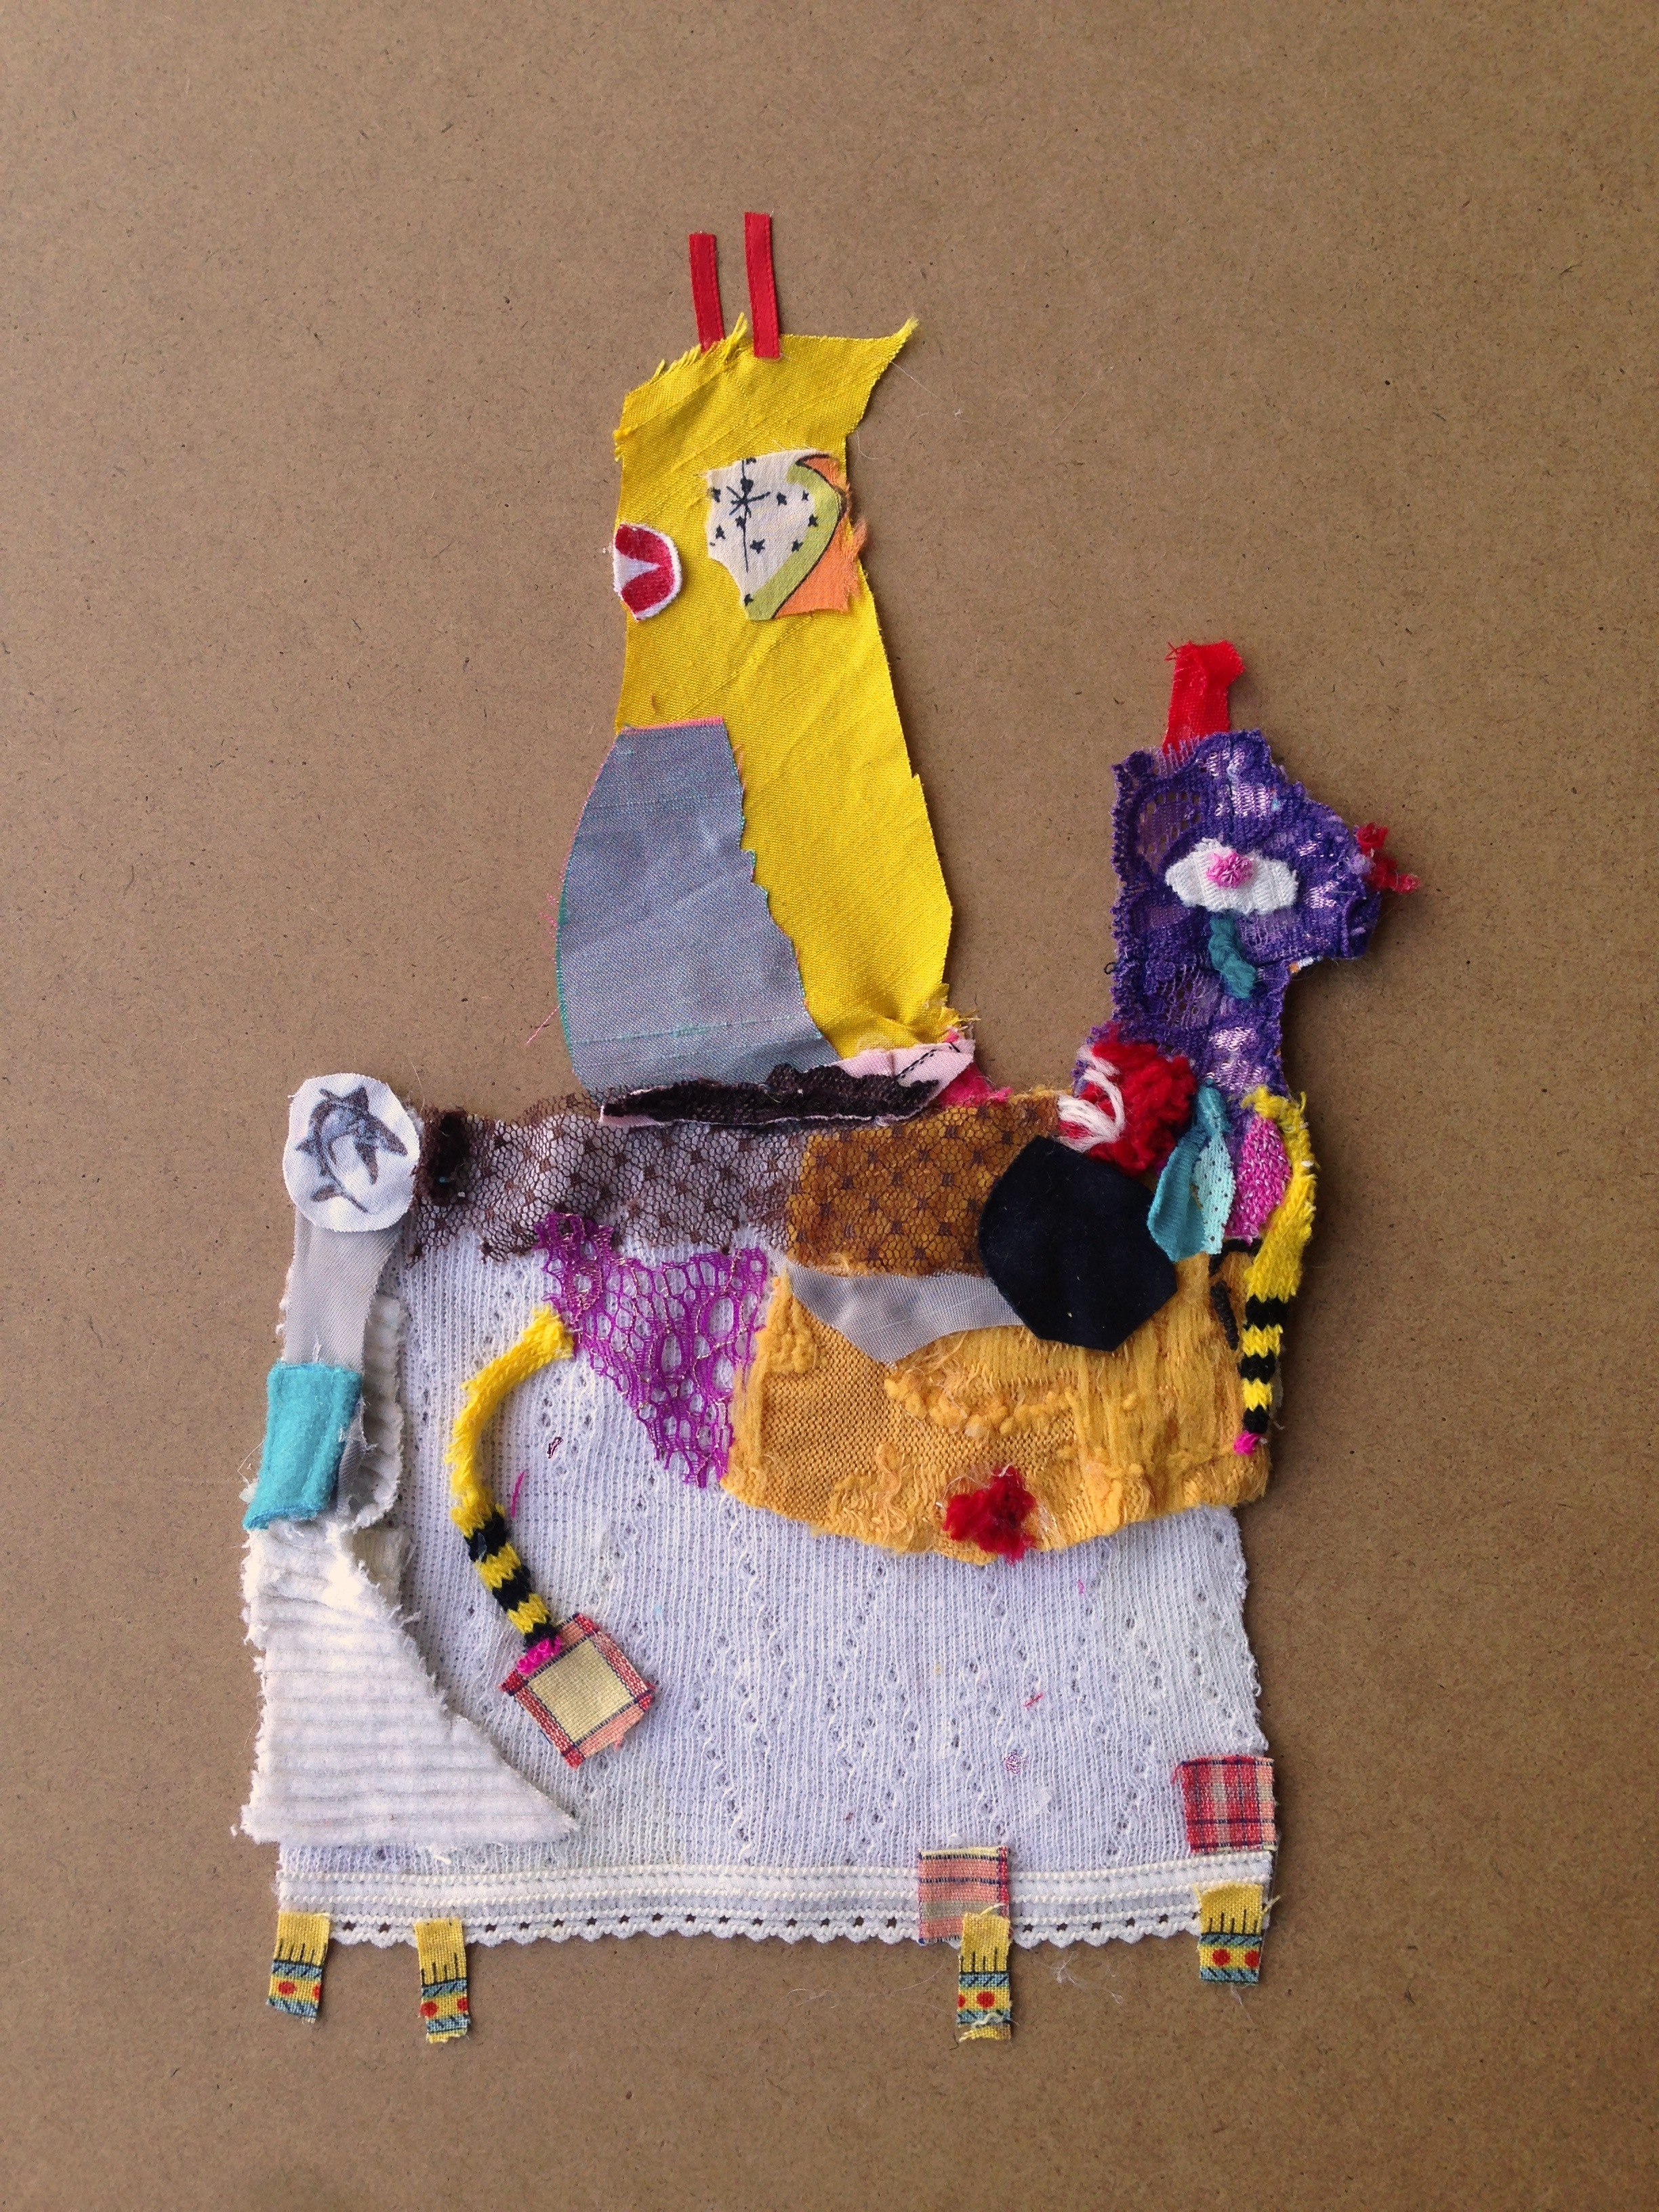 No Name Horse with Two Frozen Heads Stuck in a Stare  20.5 x 20.5 inches  Recycled fabric: Corduroy, velvet, satin, silk, shark pajamas, lace, old socks and ribbons.  2015